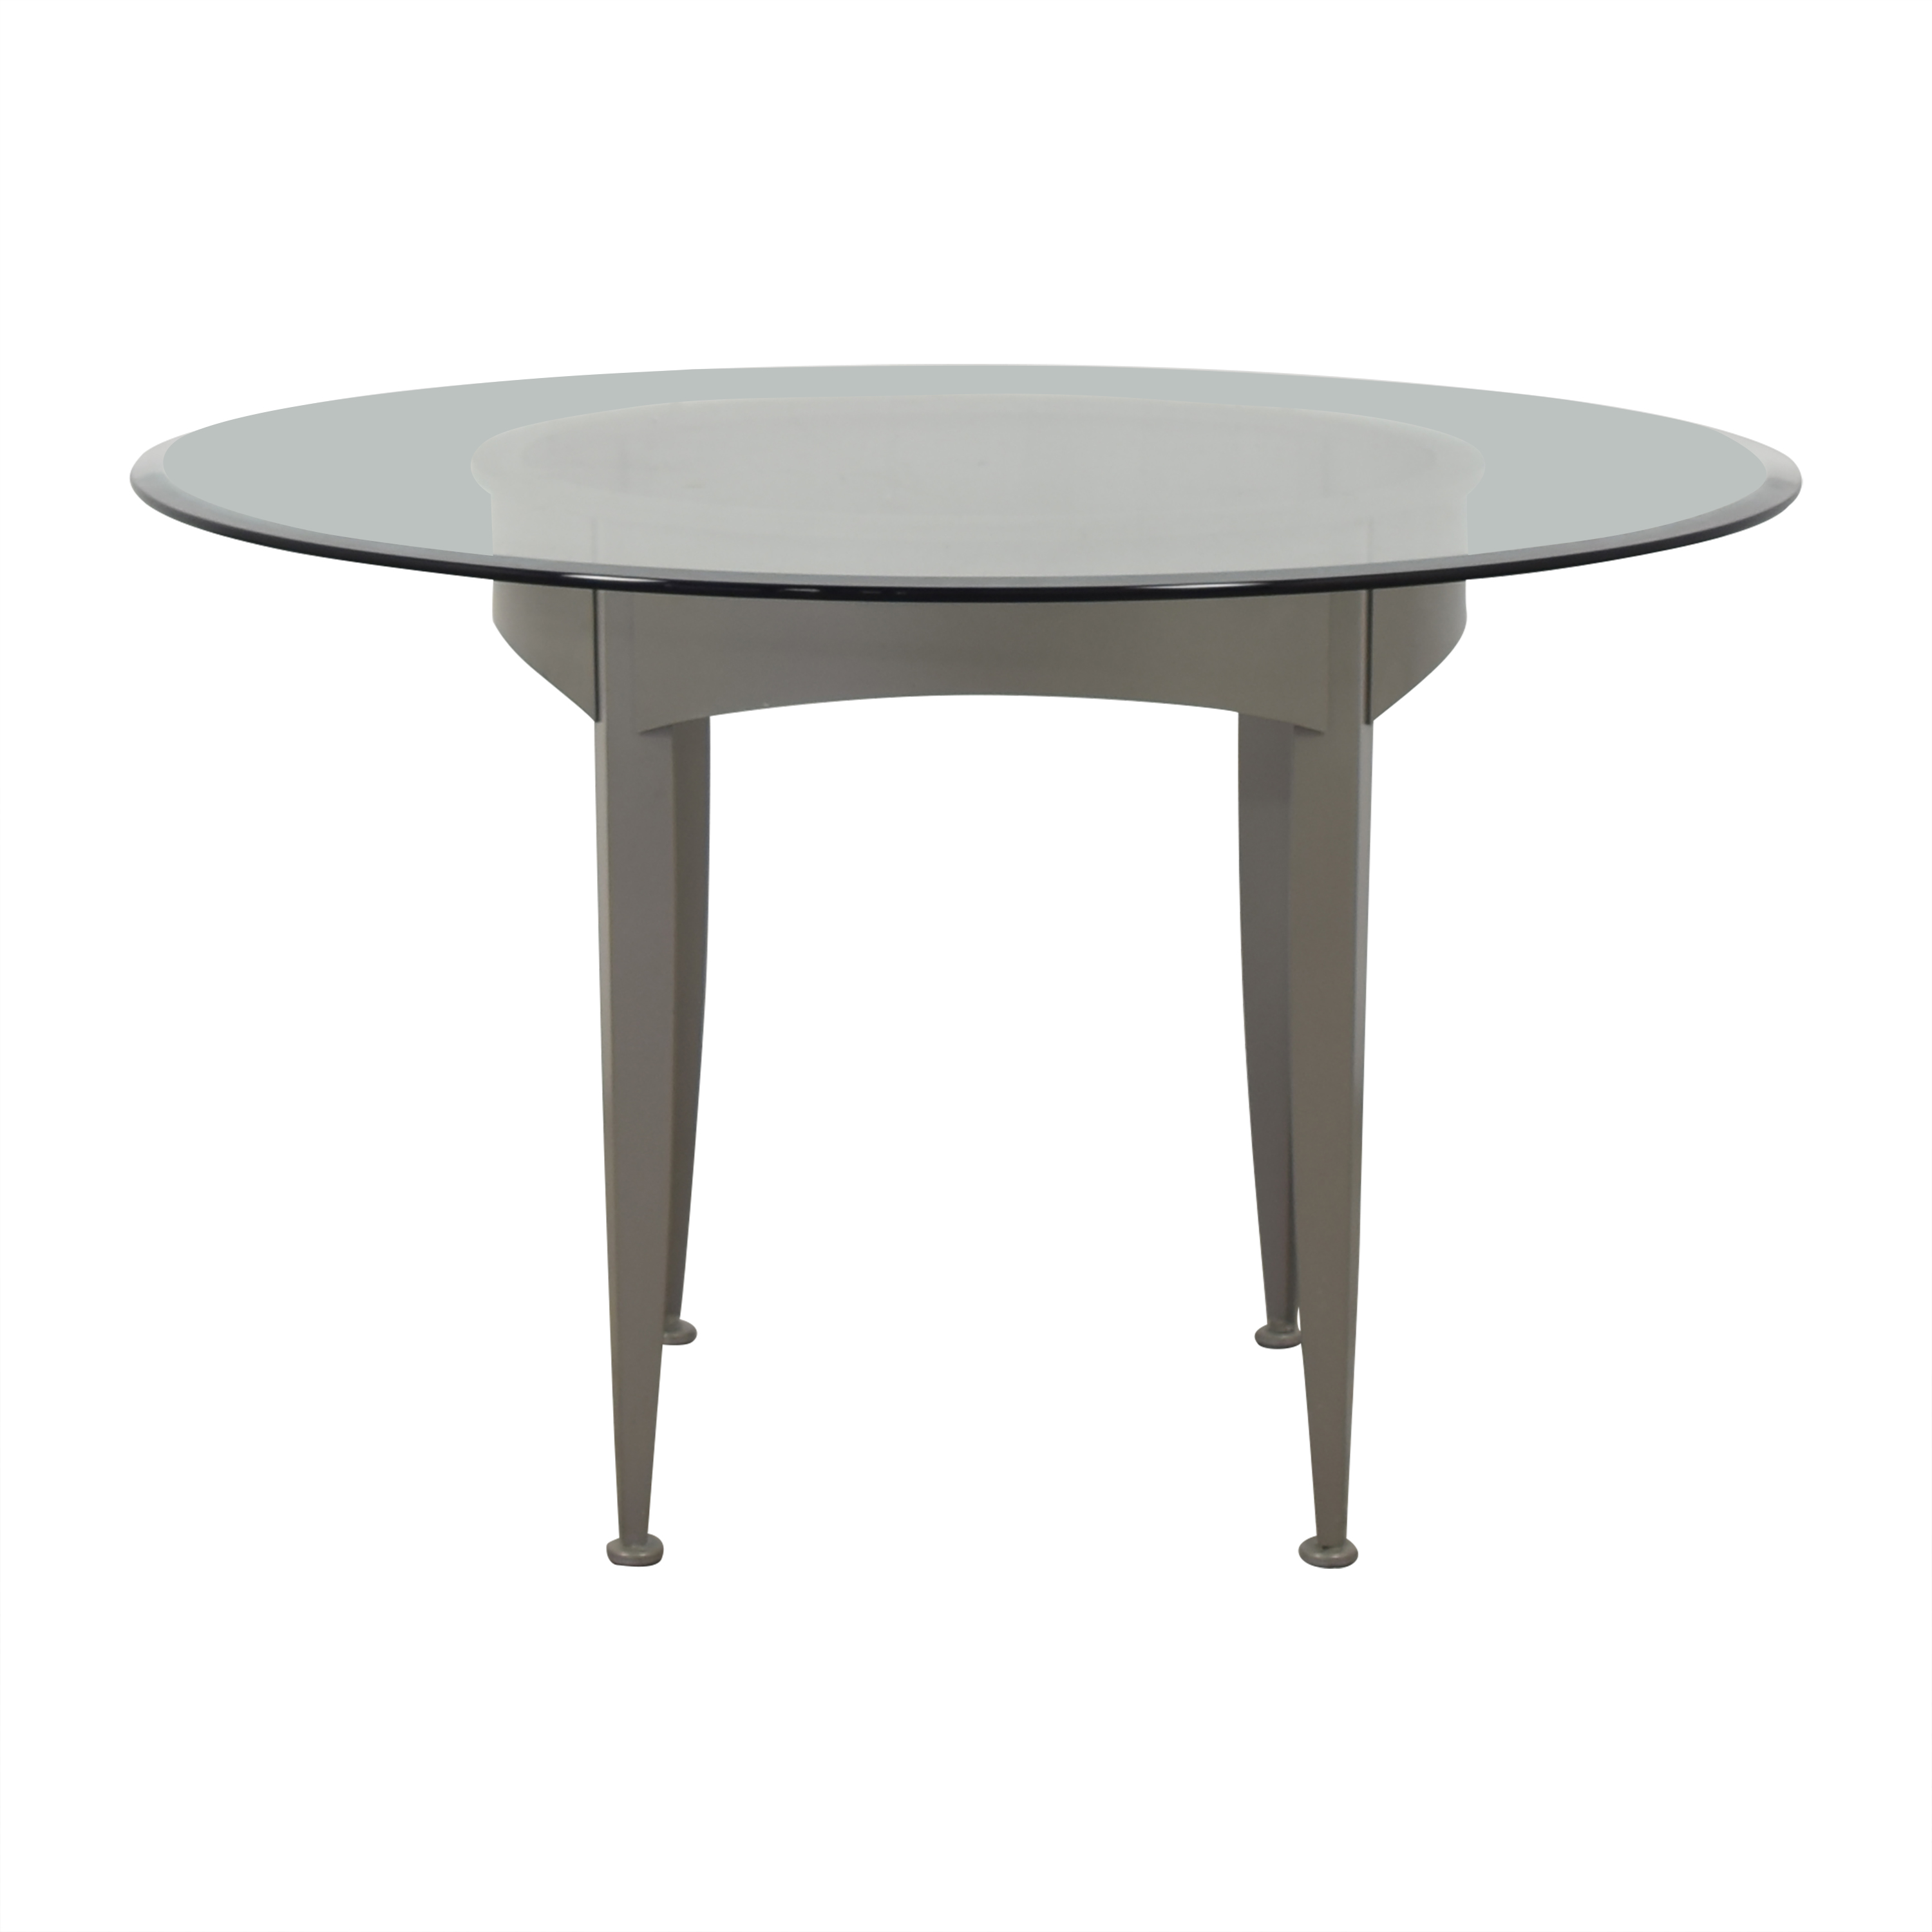 Johnston Casuals Johnston Casuals Round Dining Table second hand